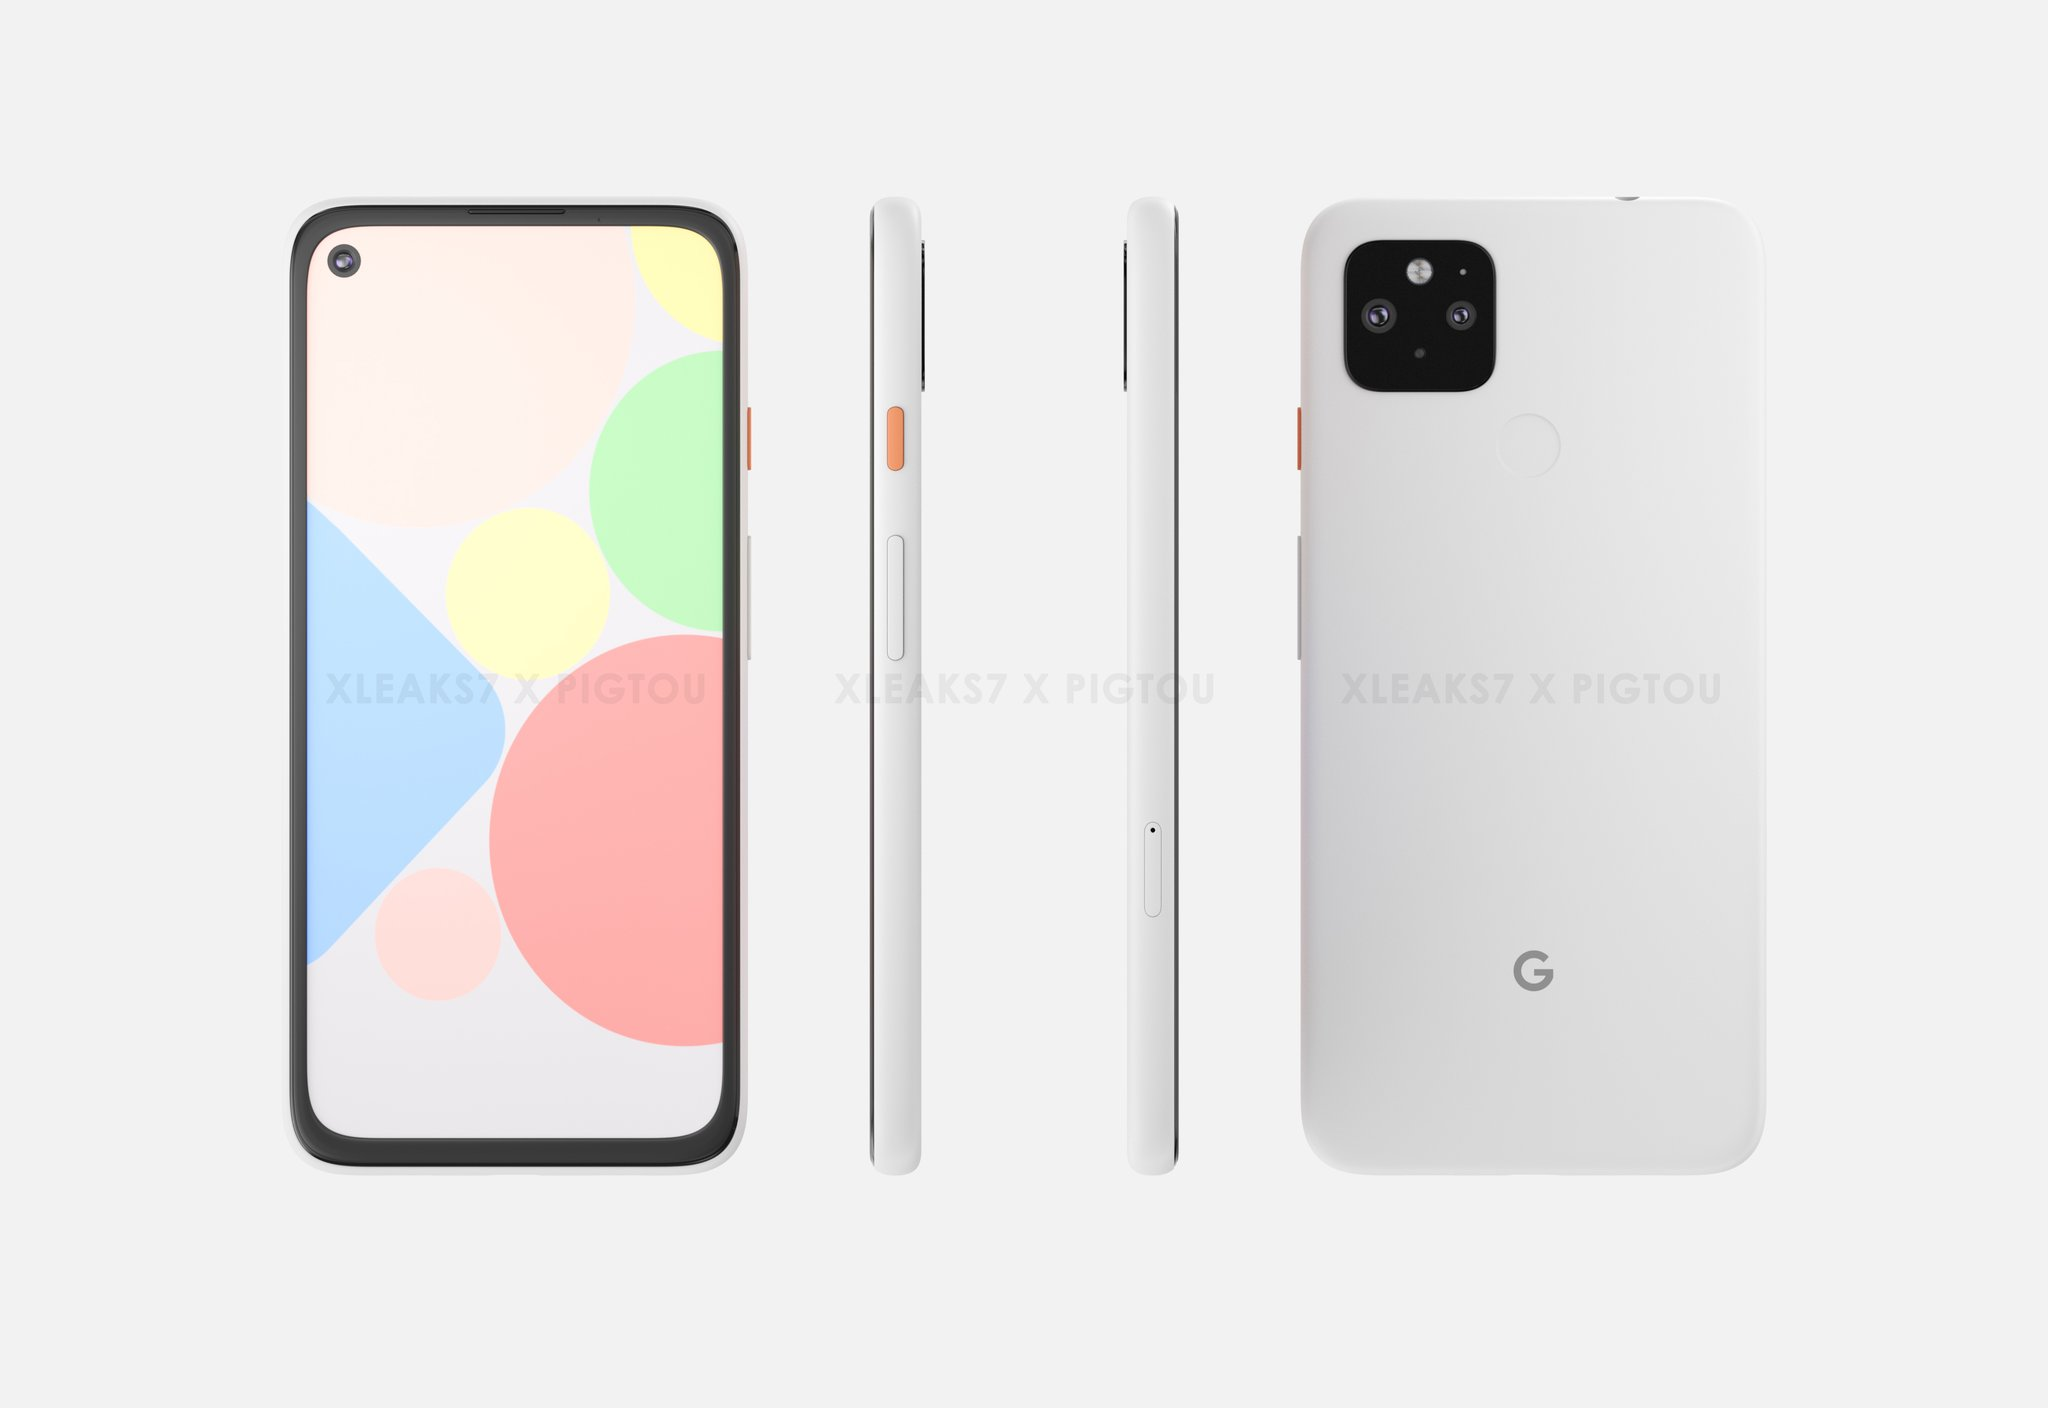 Here's what the canceled Google Pixel 4a XL would have looked like